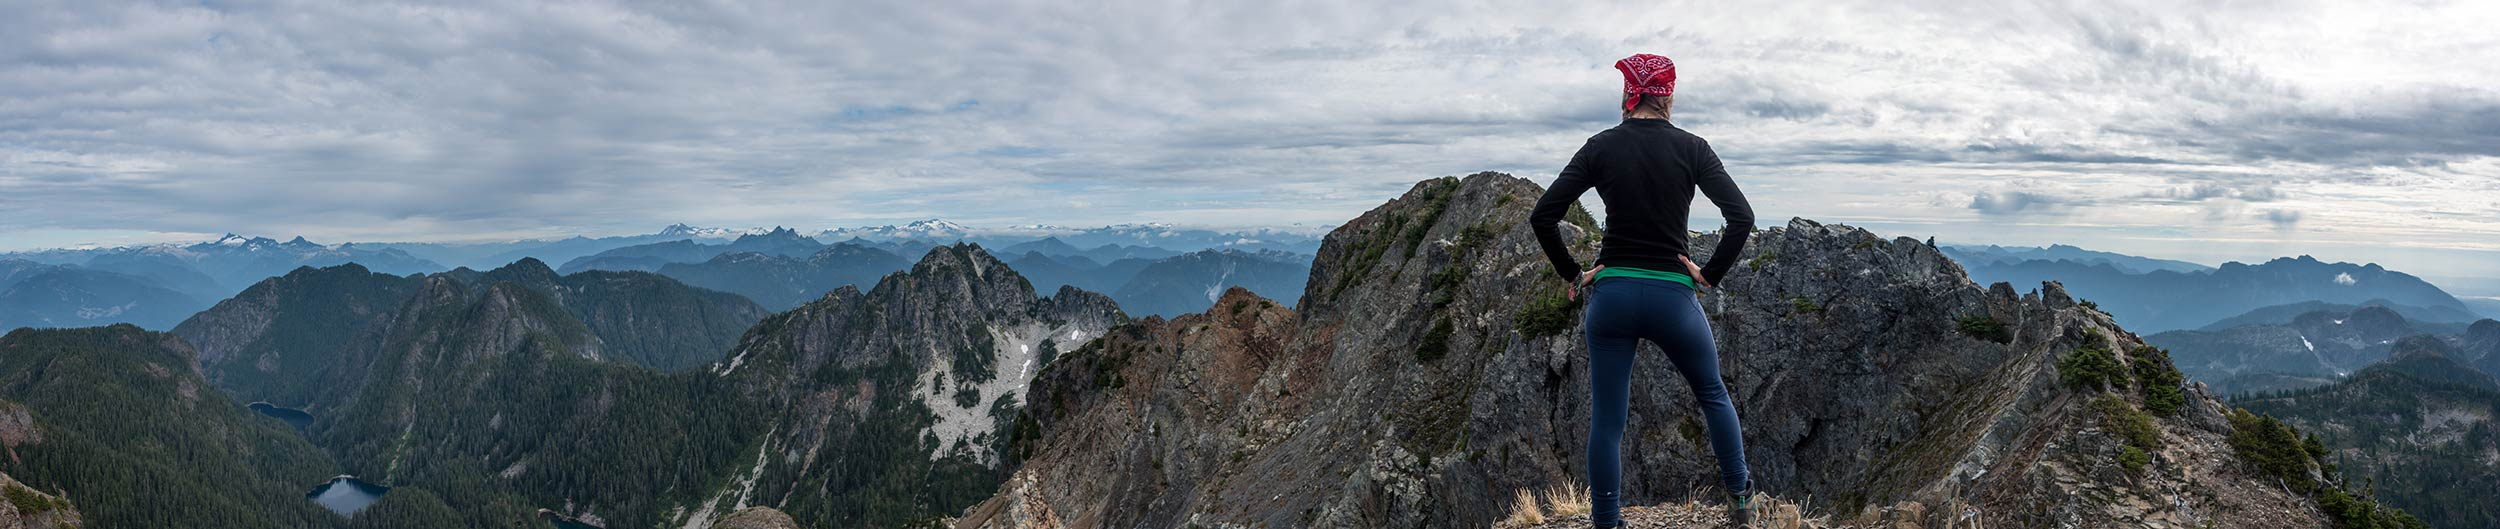 howe_sound_crest_trail_candice_mt_brunswick.jpg